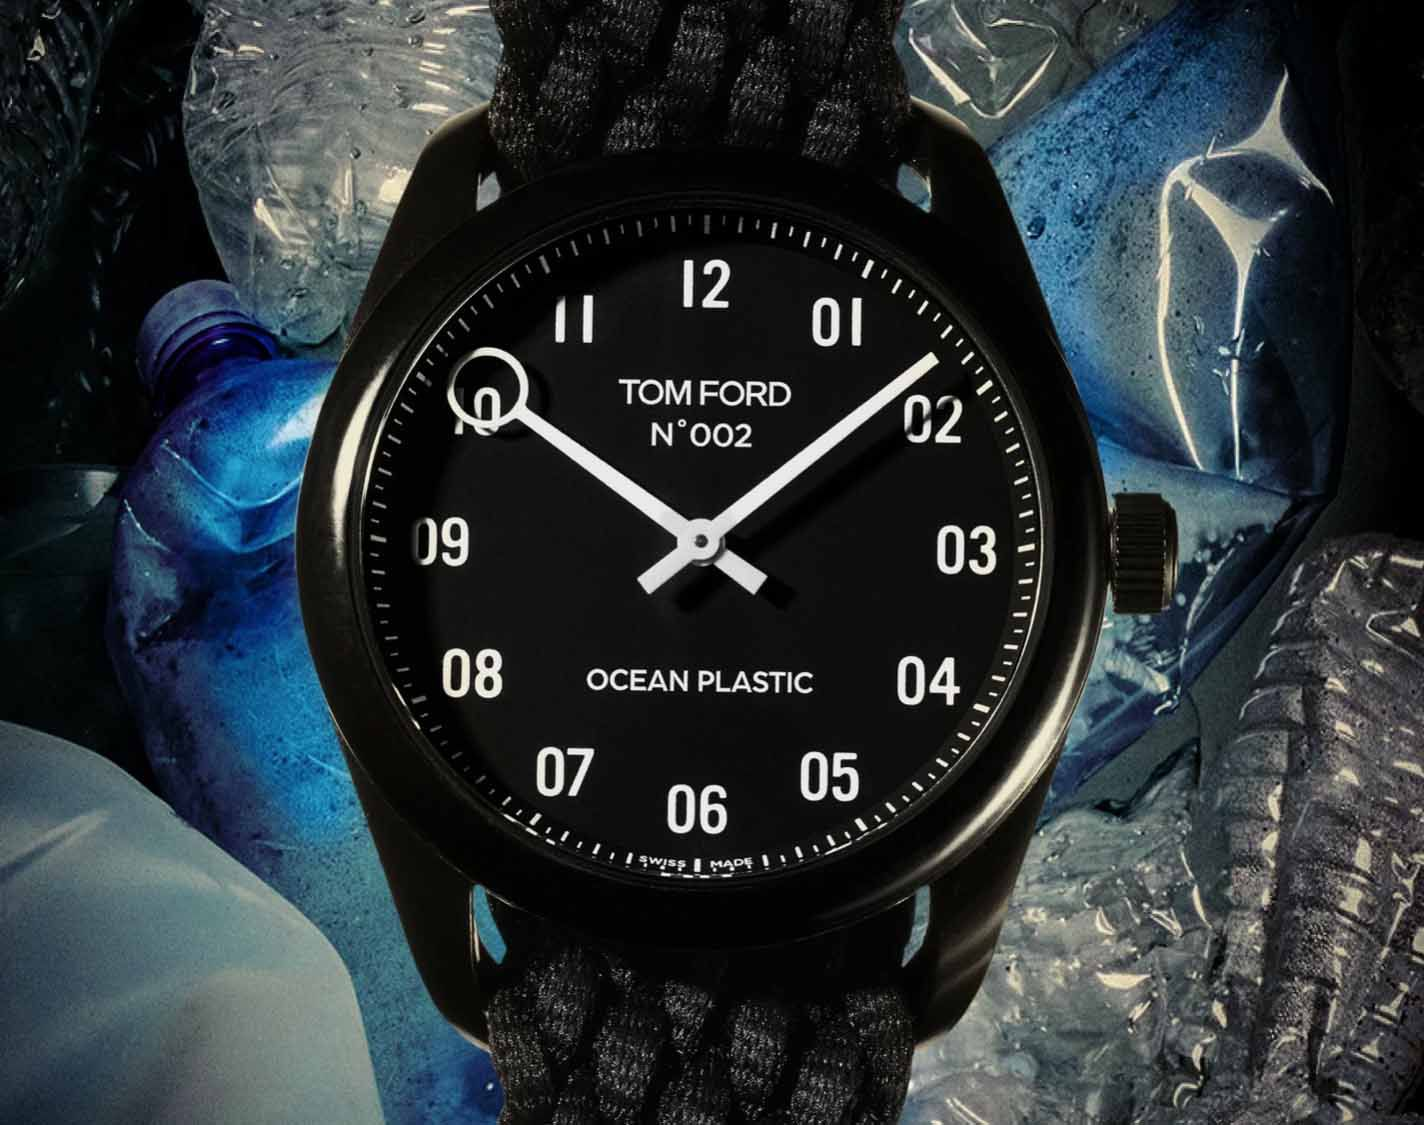 DISCOVER THE TOM FORD OCEAN PLASTIC WATCH, MADE WITH 35 BOTTLES OF PLASTIC WASTE